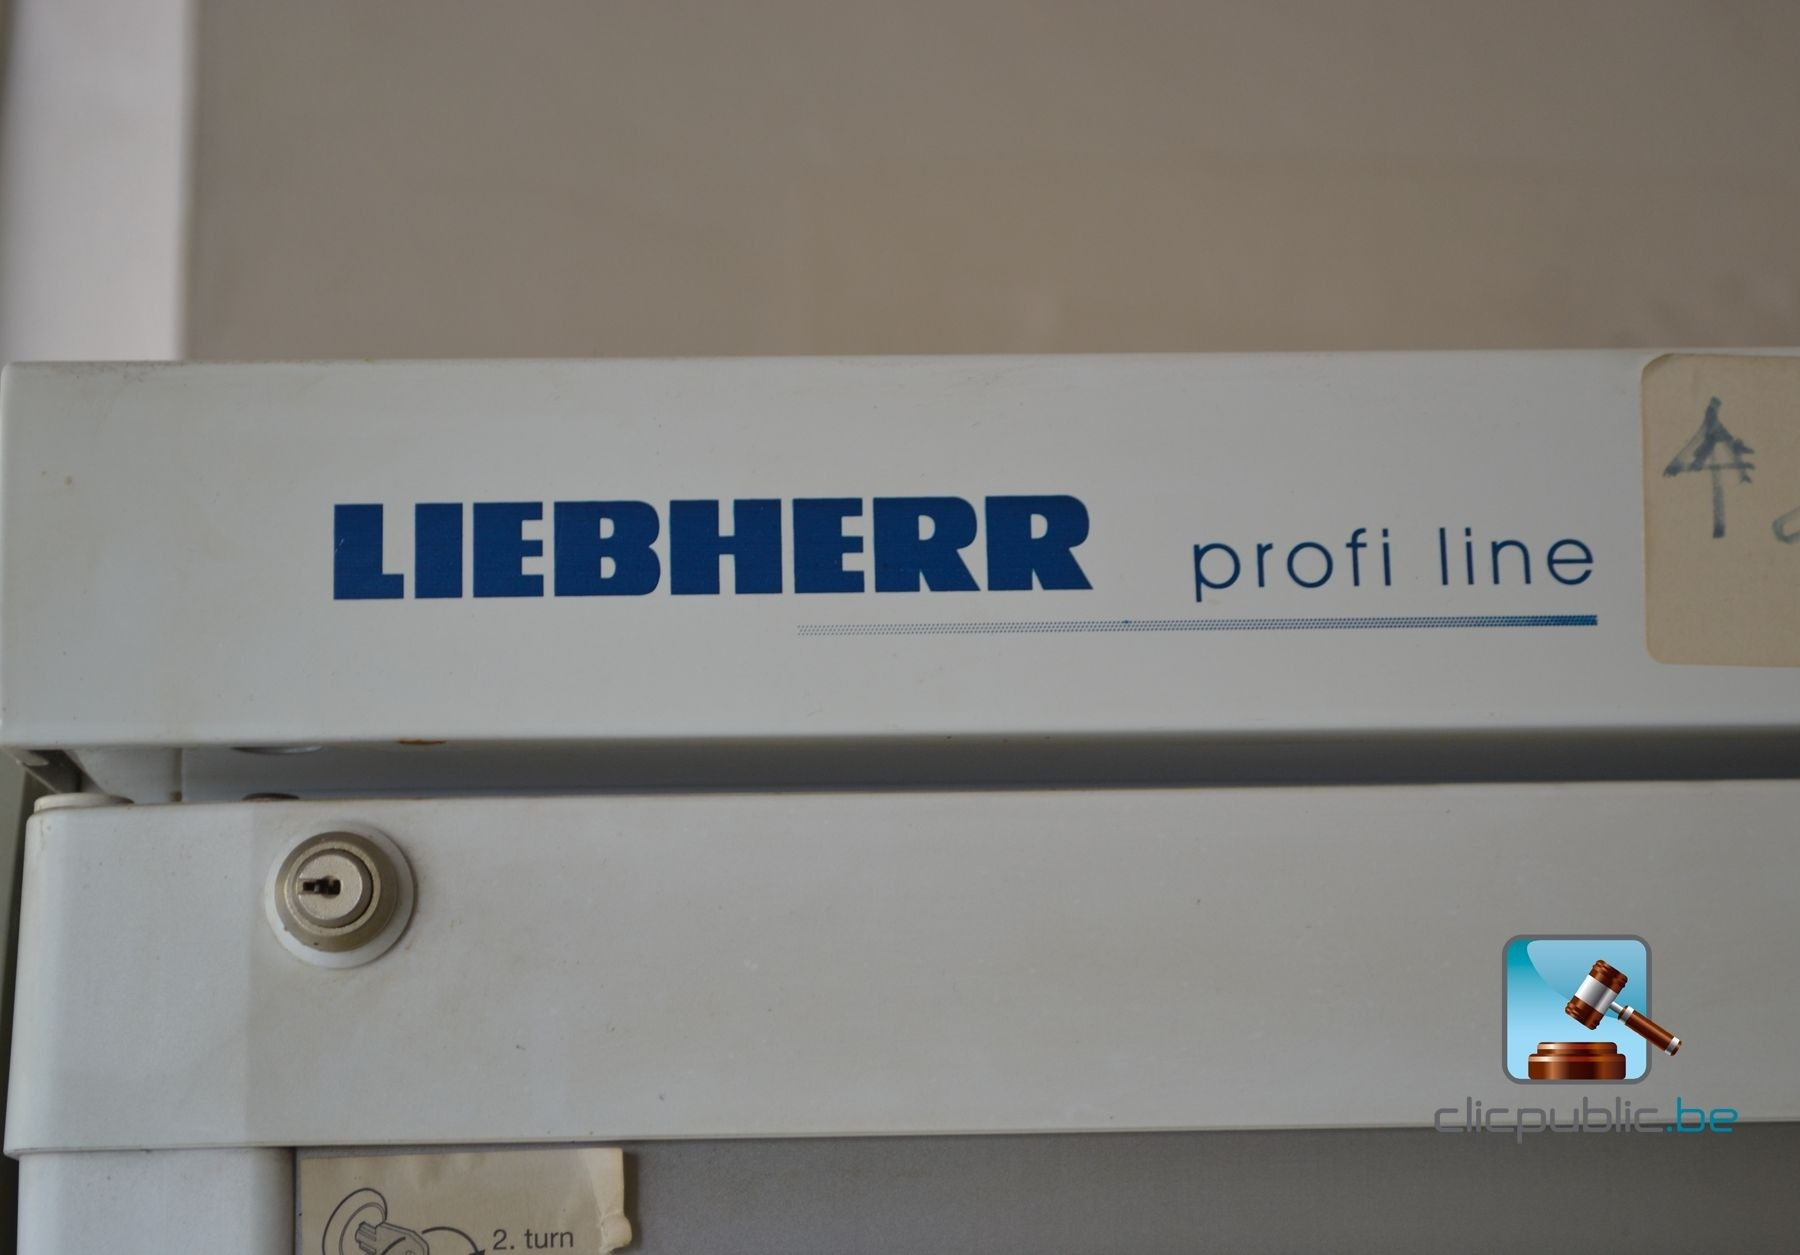 Refrigerator Liebherr Profi Line 10489 besides Business Growth Templates likewise Future Of Population Health Management additionally Conflict Resolution In The Classroom further Anti Bribery Corruption Risk Assessment. on public health model dimensions